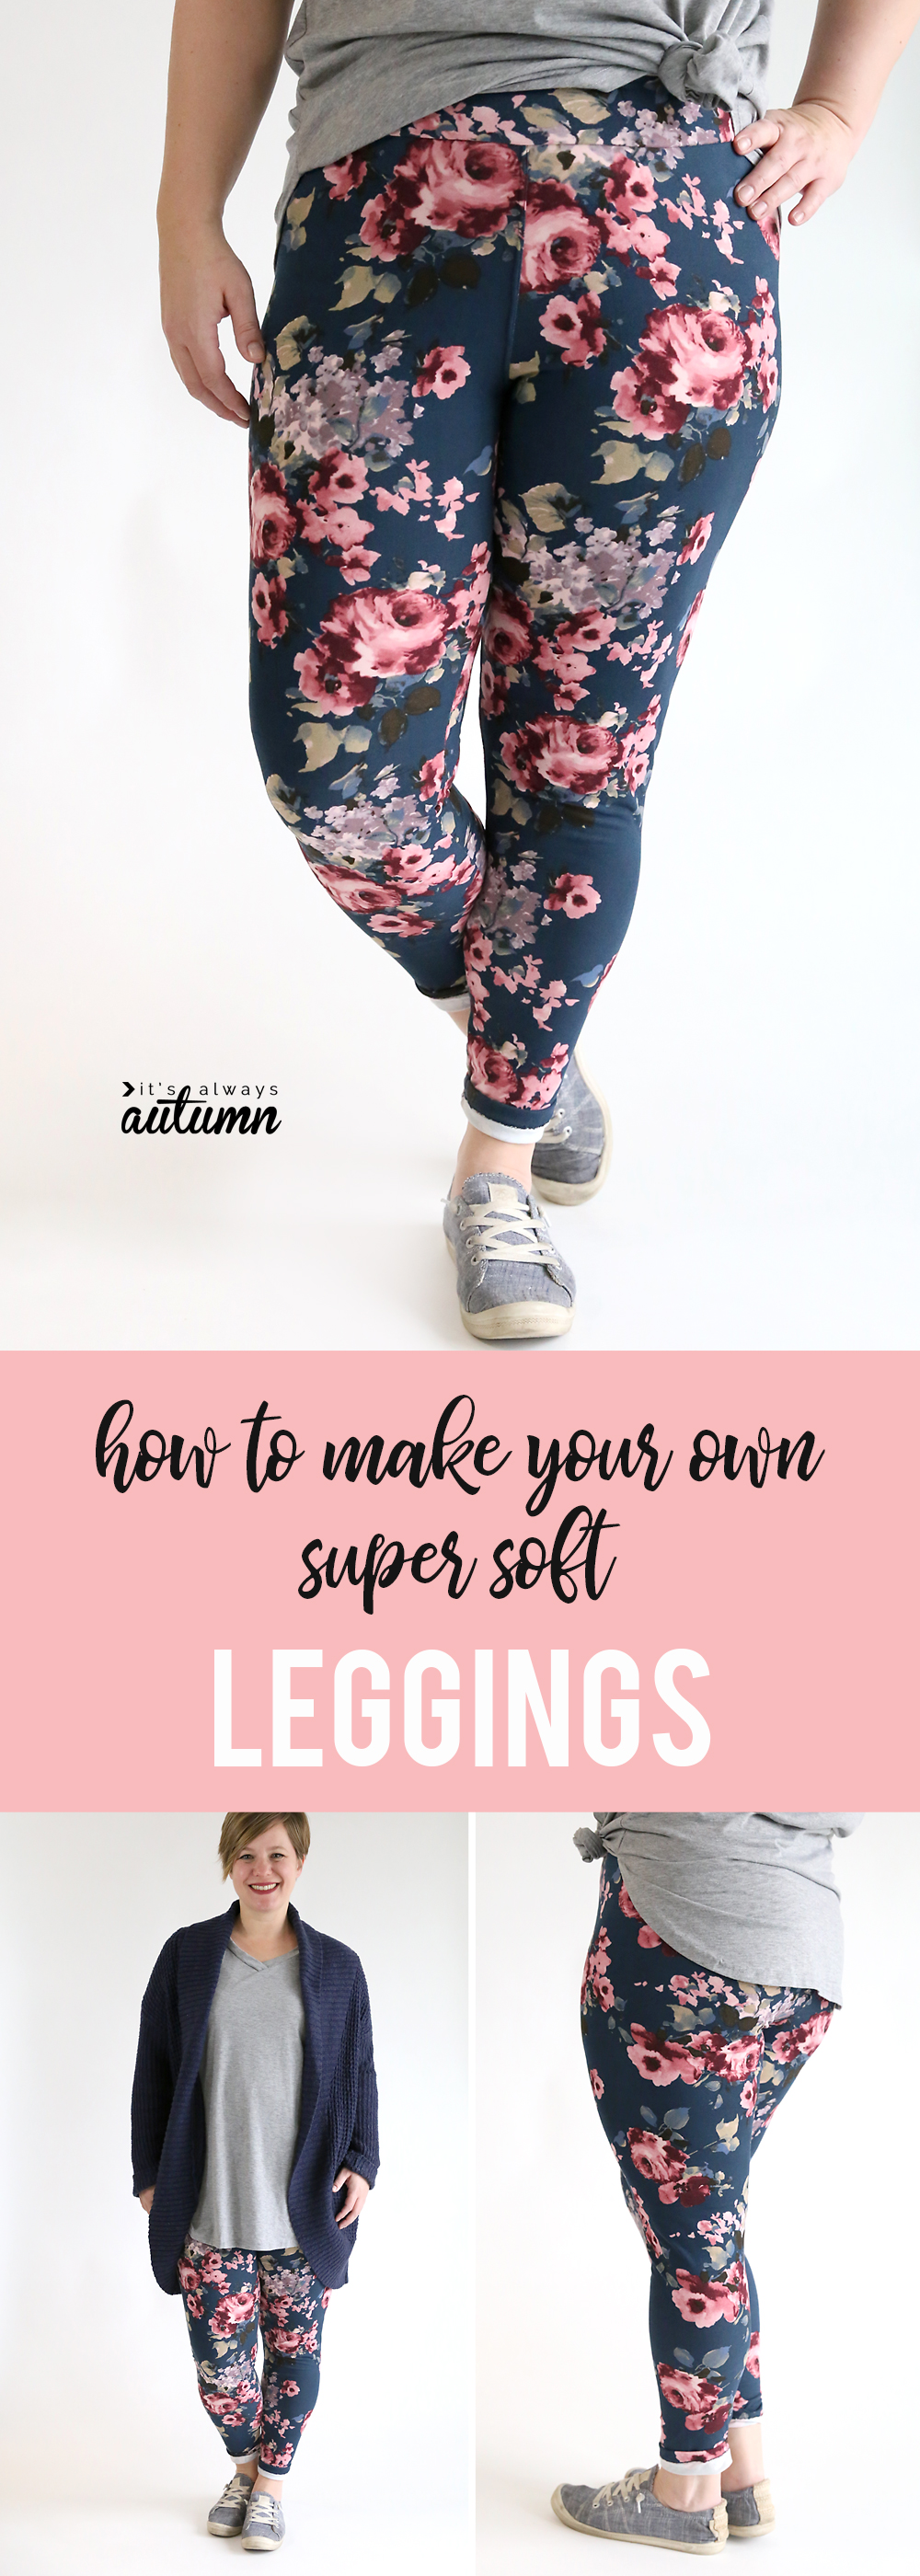 How to make buttery soft leggings at home. How to sew your own LulaRoe leggings.